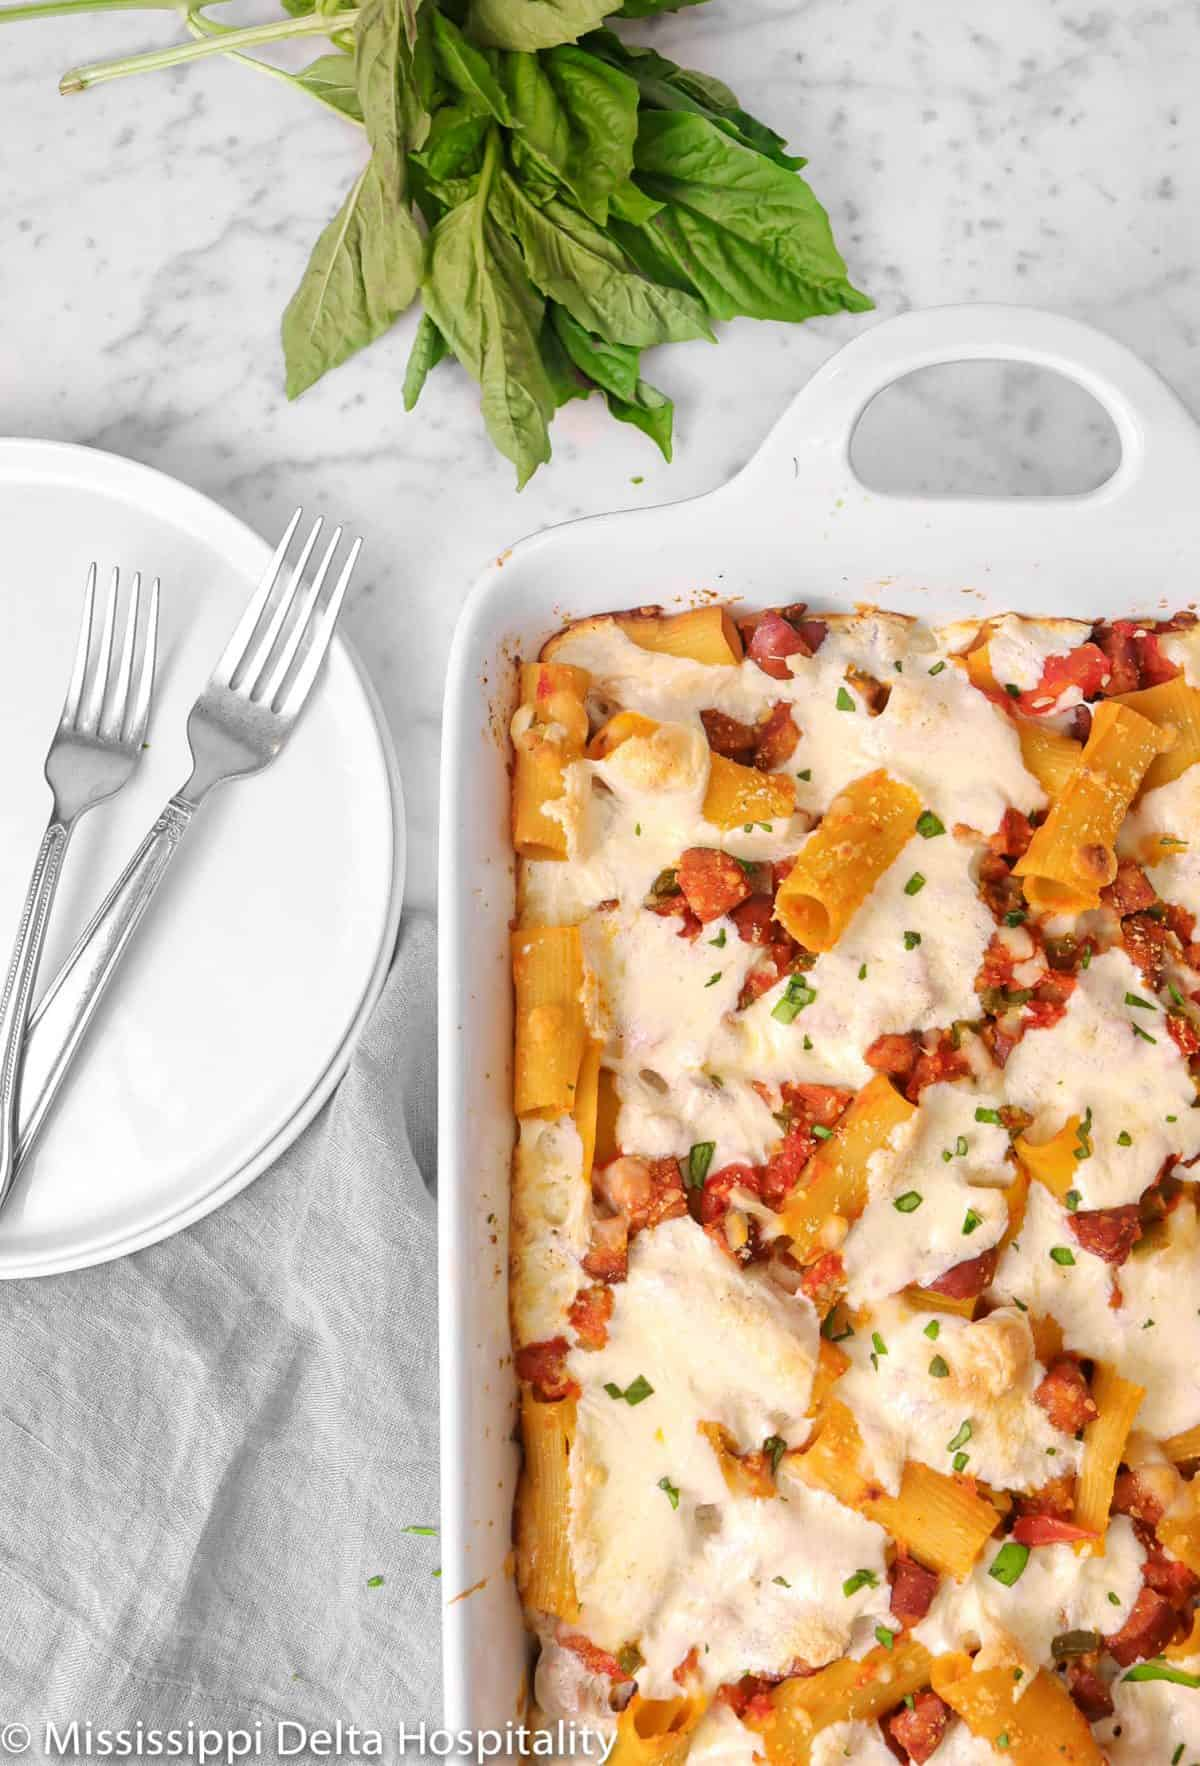 baked rigatoni on a marble counter with white plates, two forks, and basil